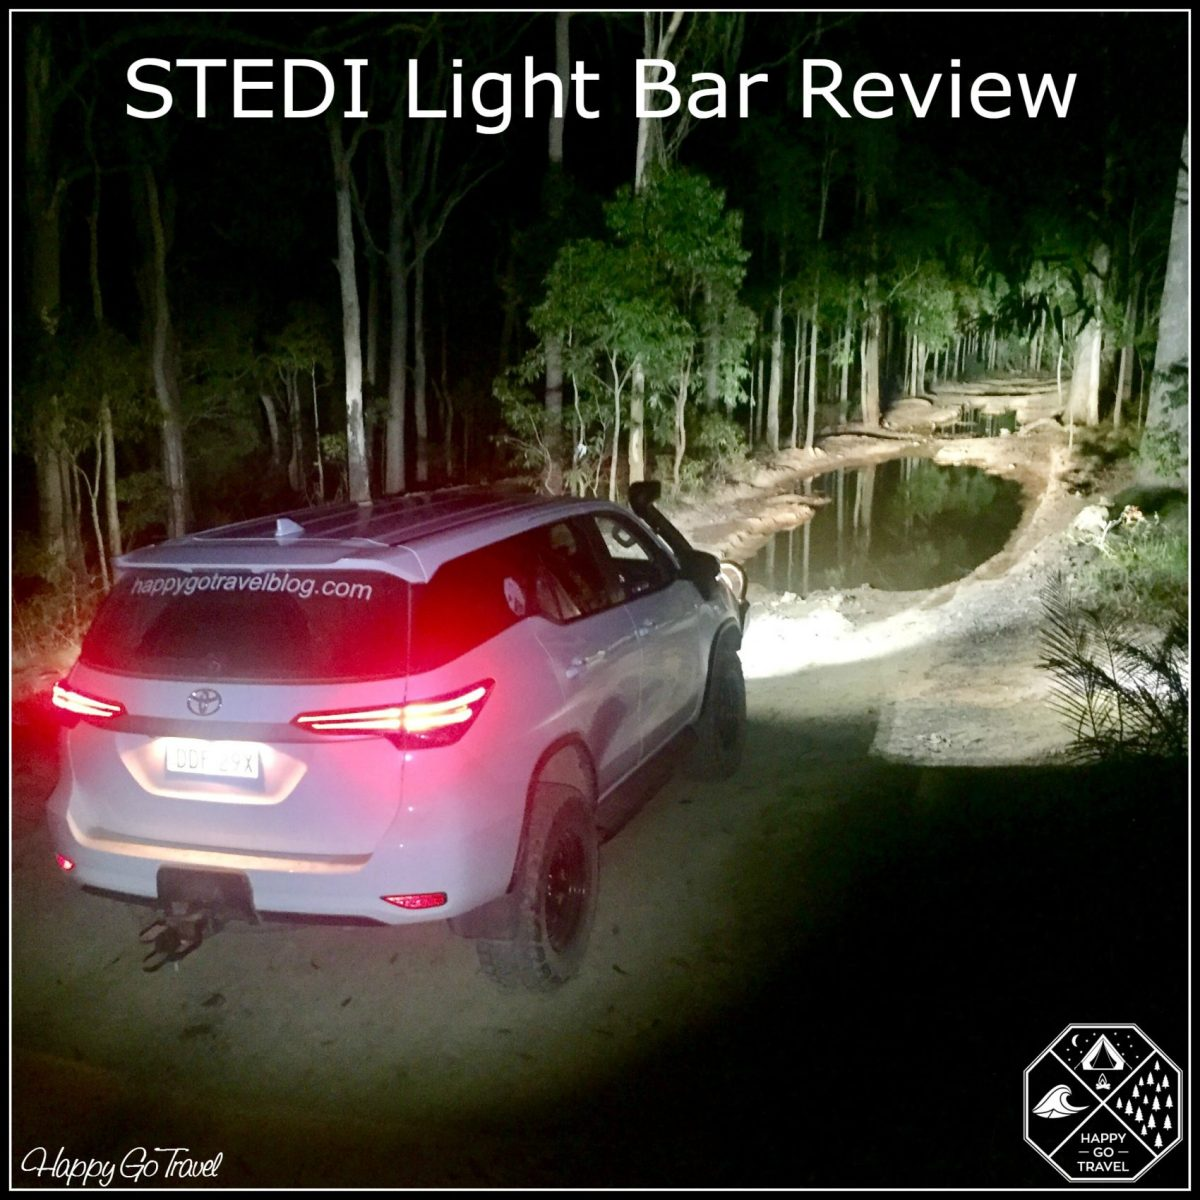 STEDI Light Bar Review - ST4K LED